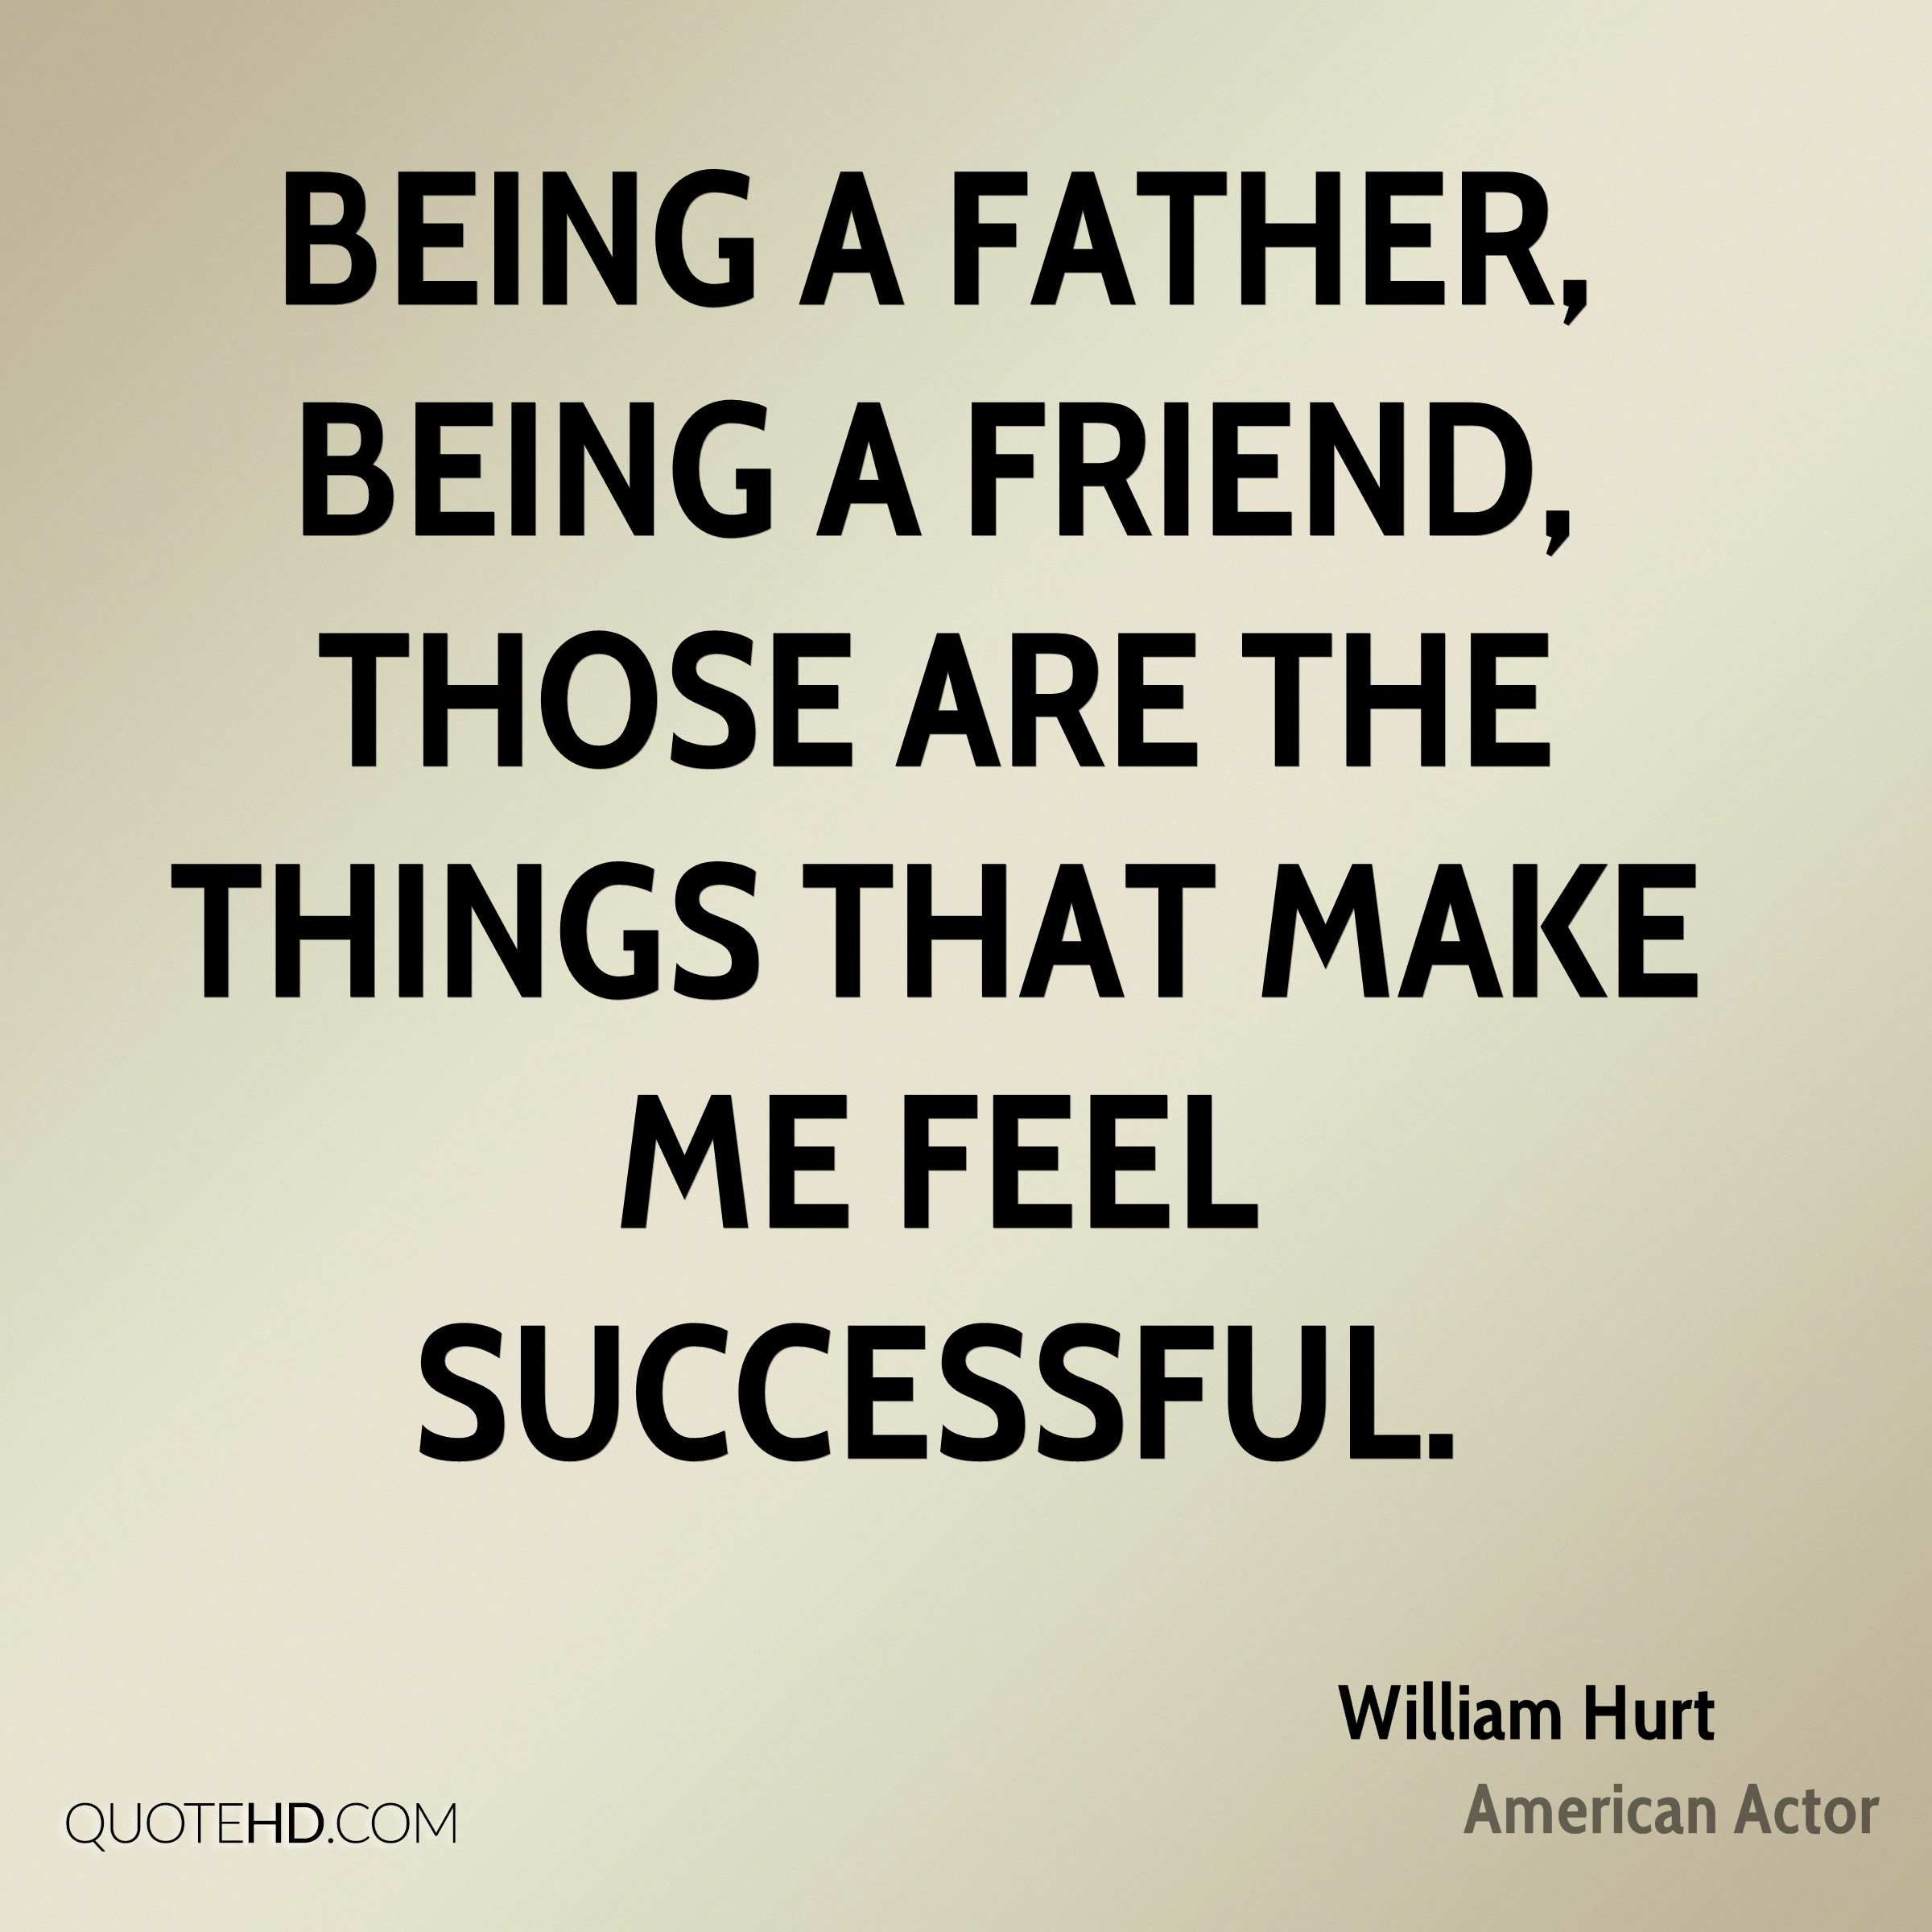 Being A Dad Quotes: William Hurt Dad Quotes